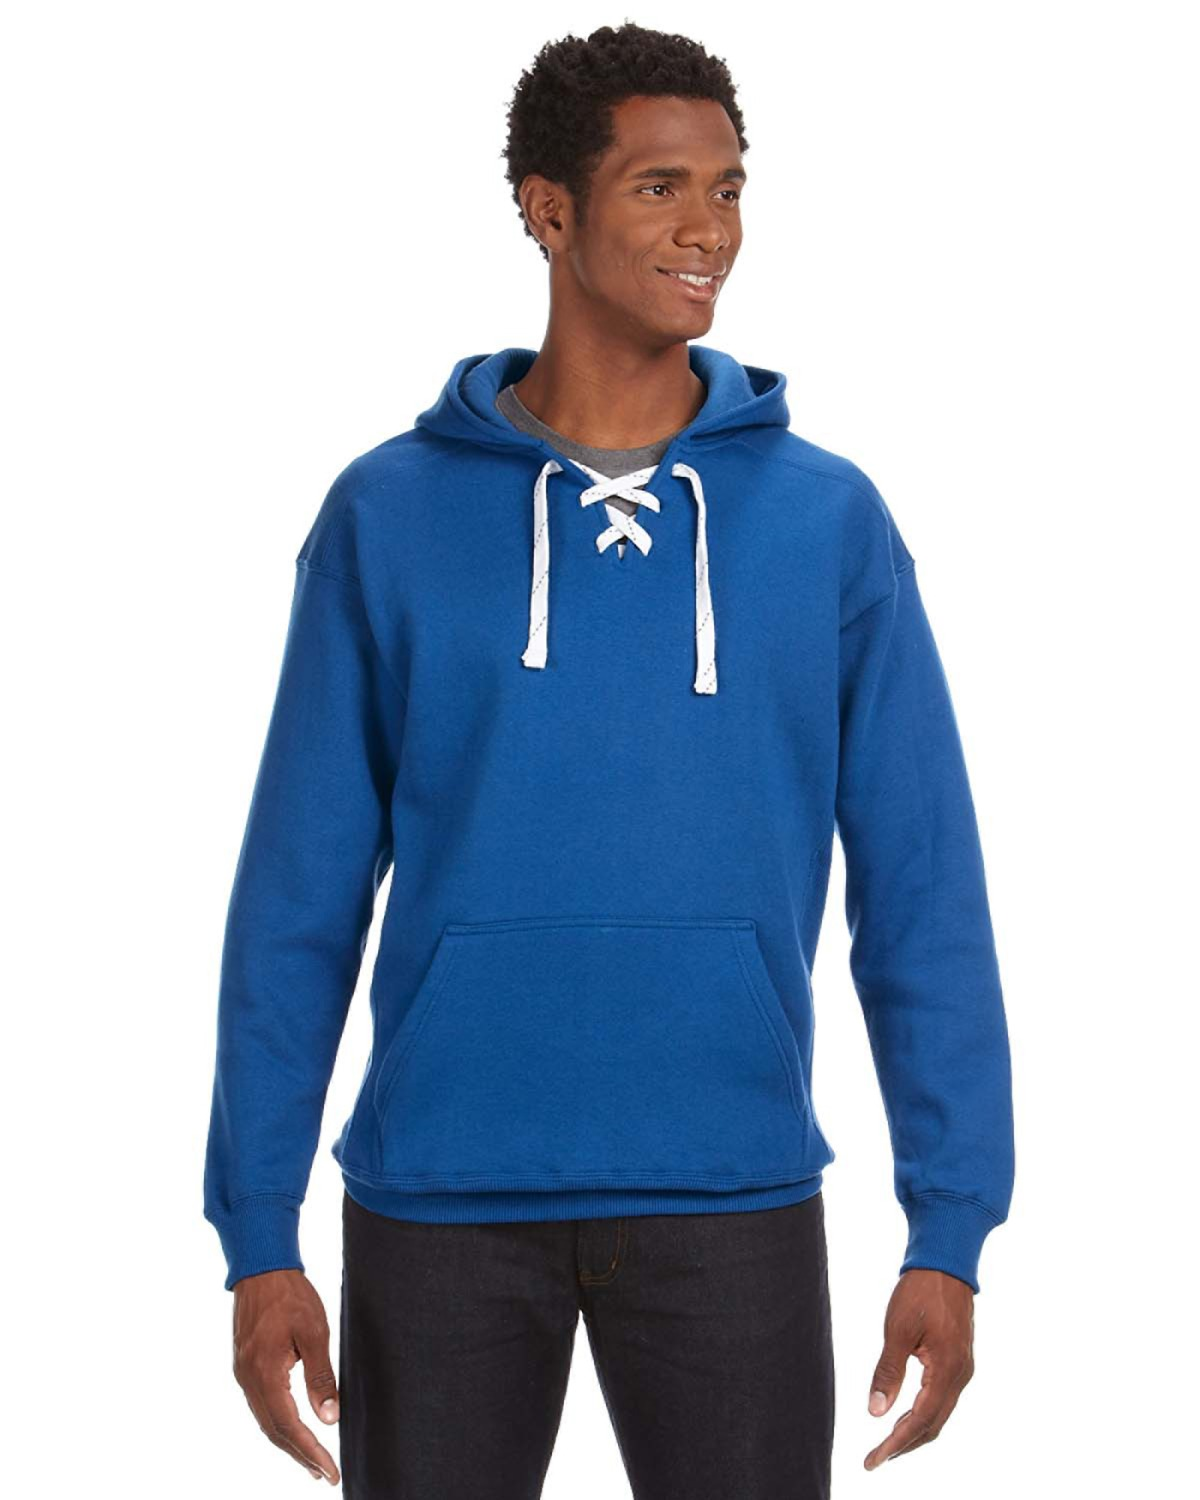 J-America J8830 - Adult Sport Lace Hooded Fleece